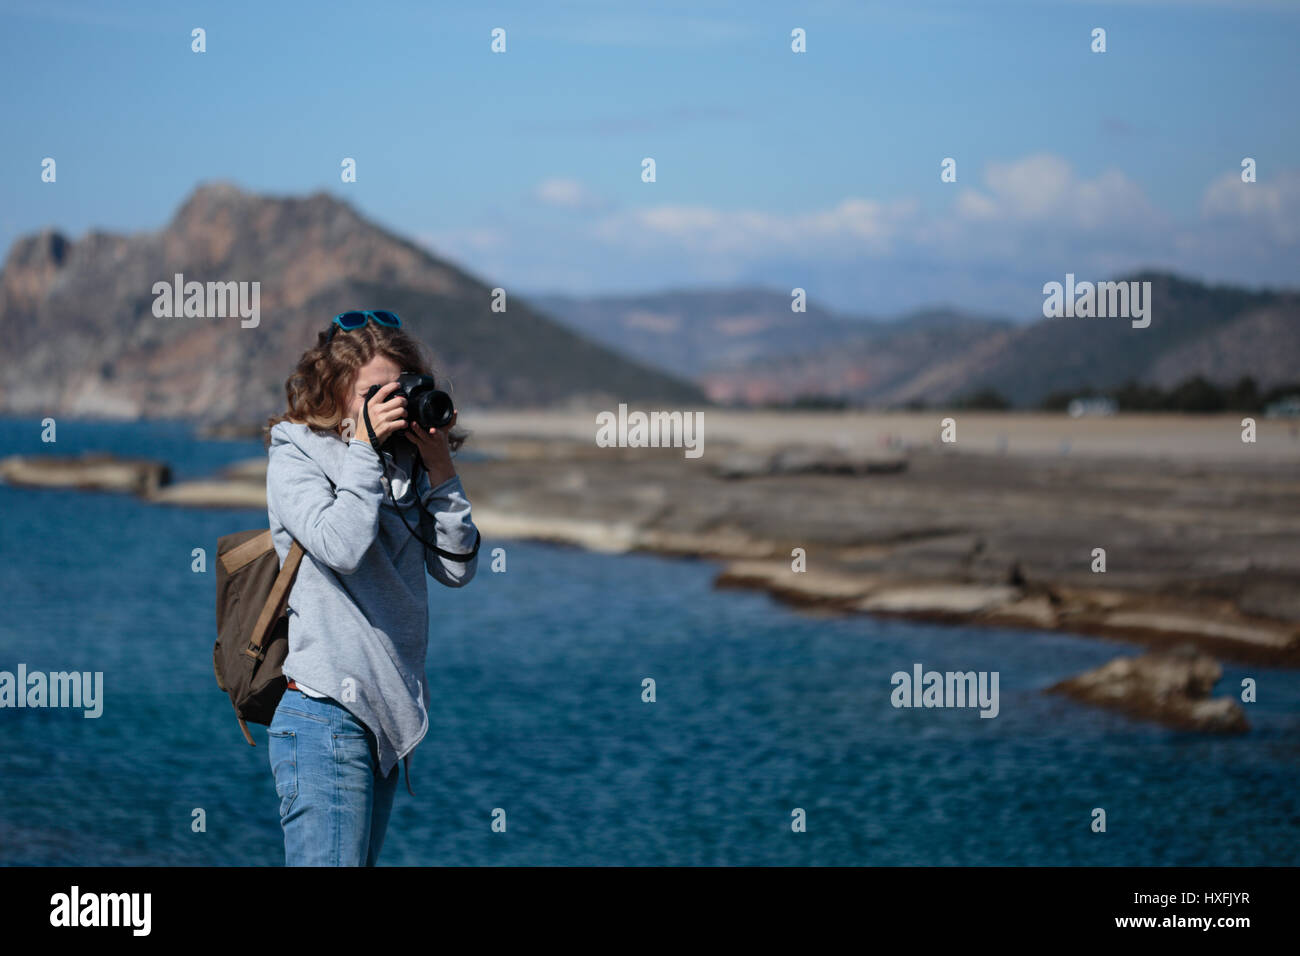 Young woman wearing jeans gray jacket and backpack standing and photographing rock ribbed beach in Gazipasha Alanya Stock Photo